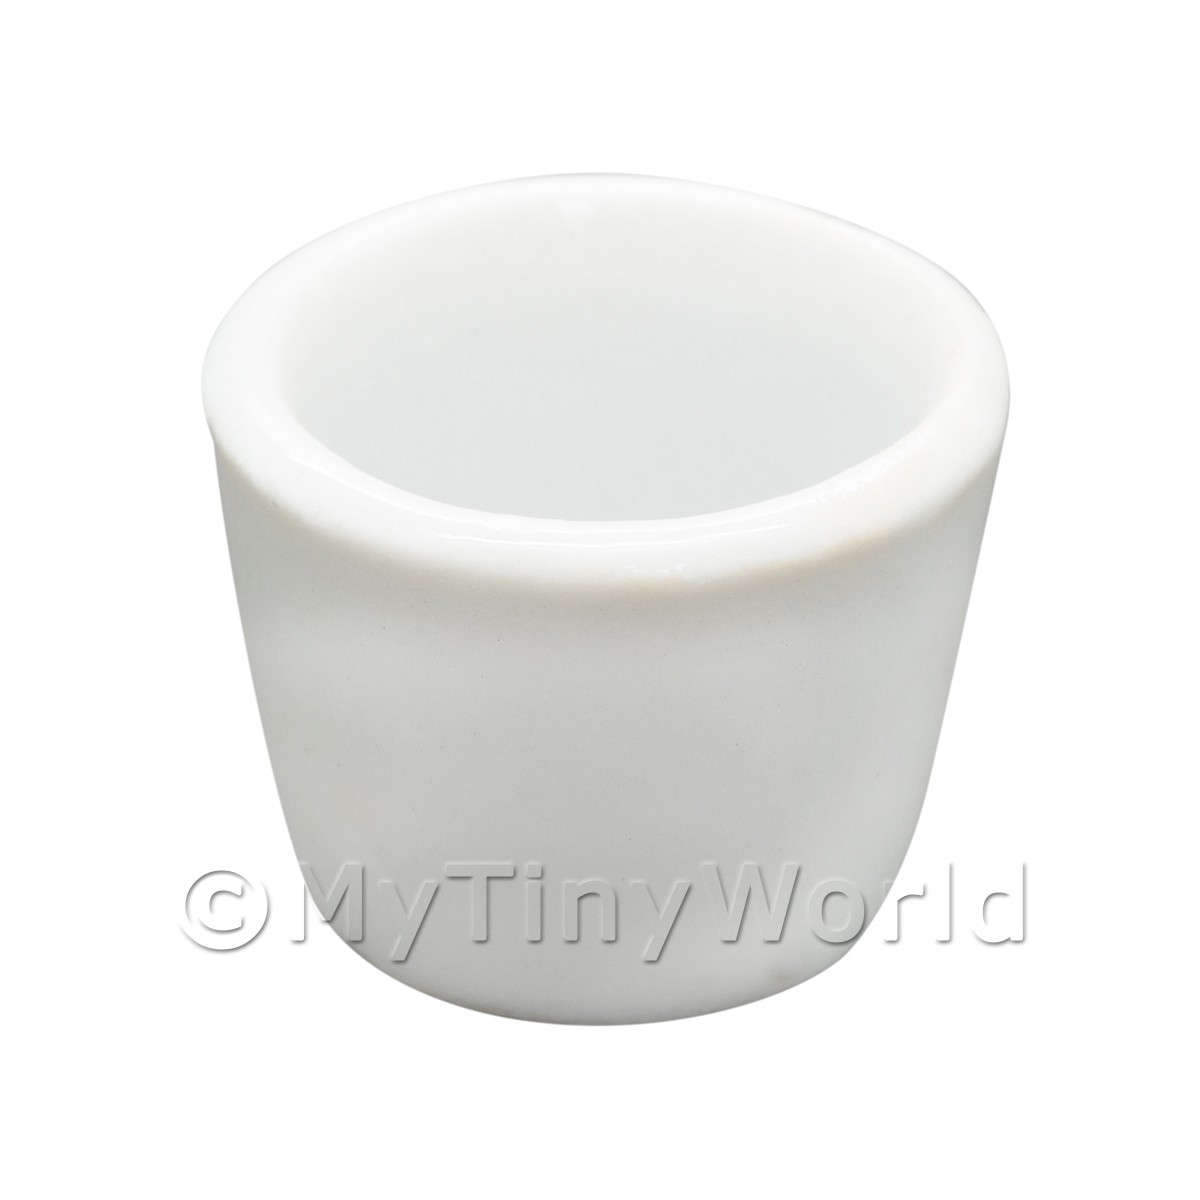 Dolls House Miniature White Glazed Ceramic Plant Pot